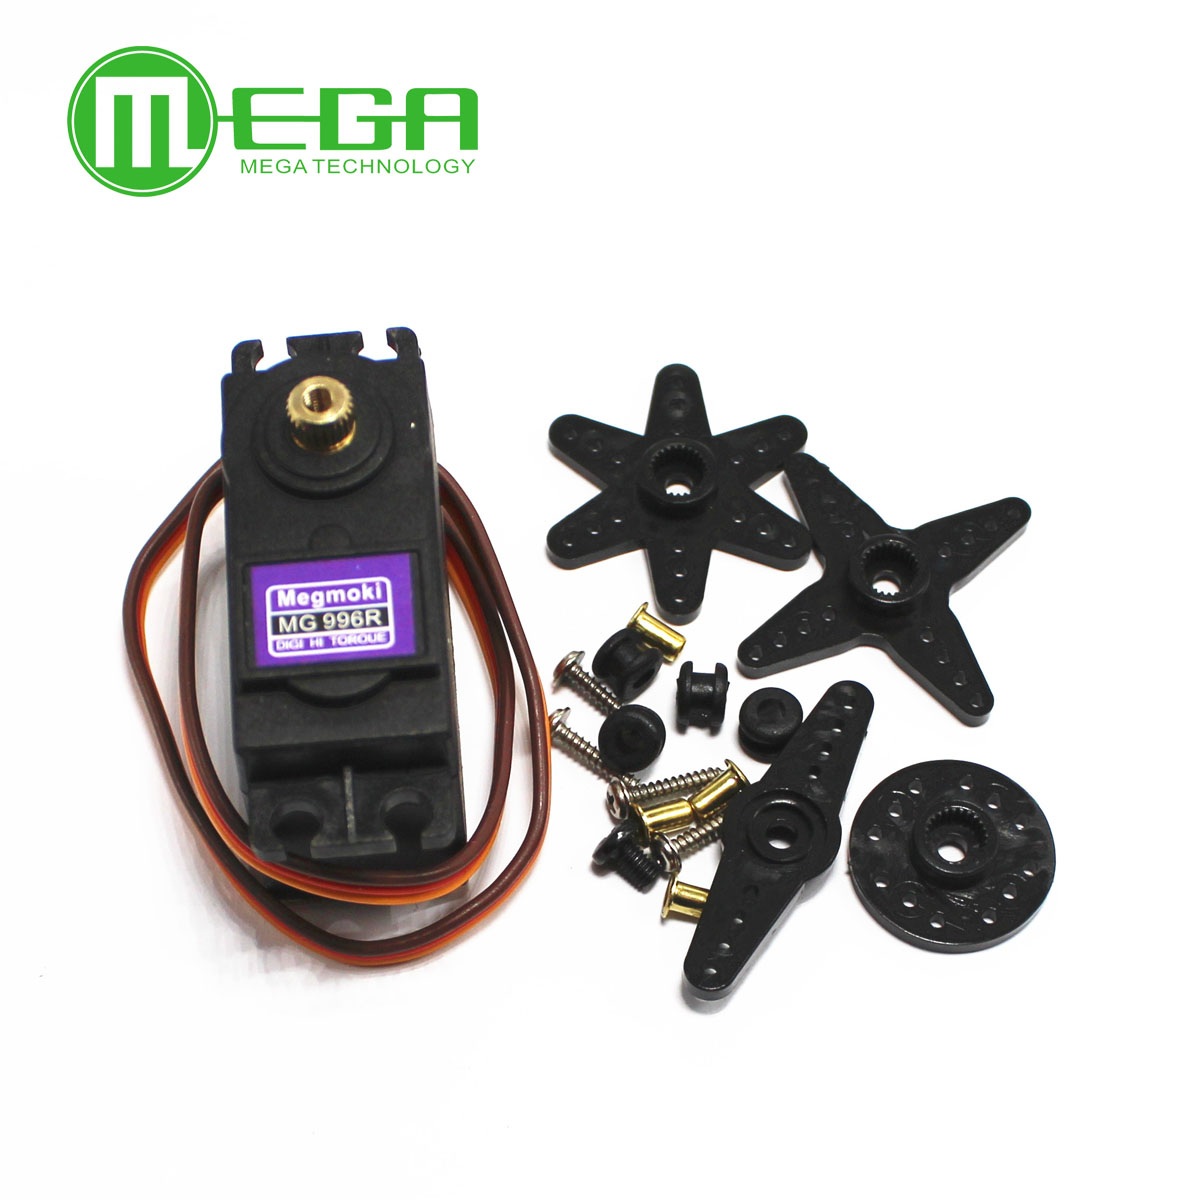 13KG 15KG Servos Digital MG995 MG996 Servo Metal Gear For Futaba JR Car RC Model Helicopter Boat